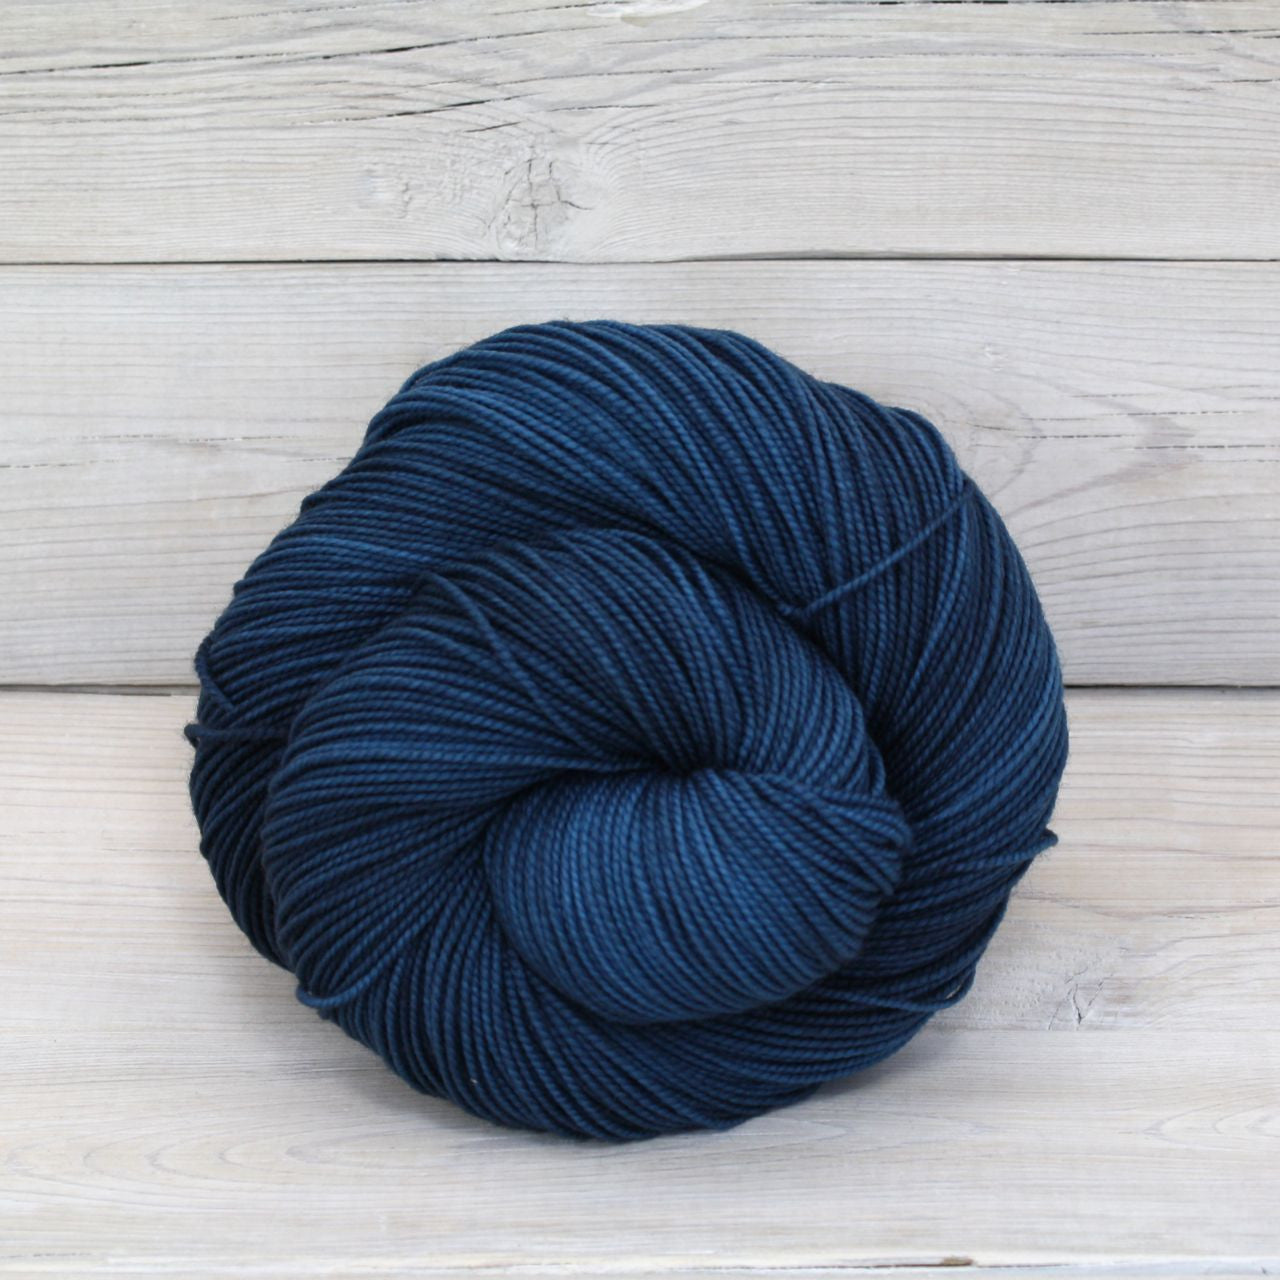 Luna Grey Fiber Arts Celeste Yarn | Colorway: Marine